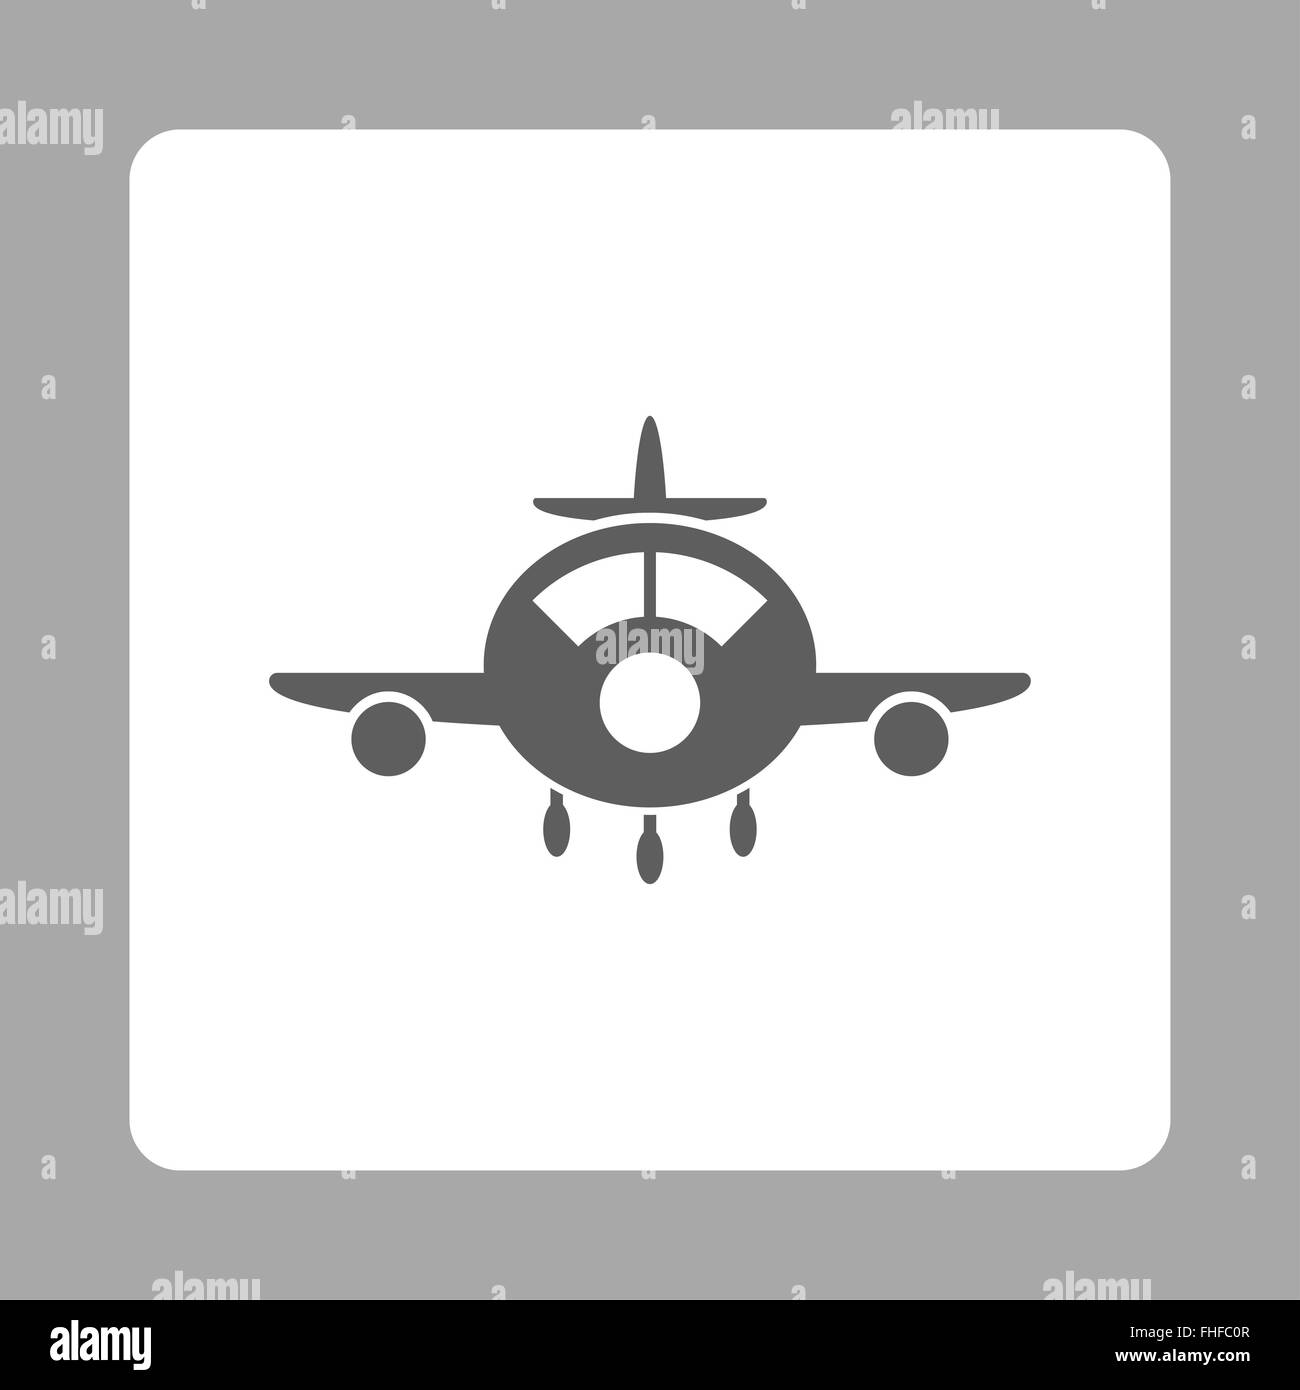 Plane Rounded Square Button - Stock Image